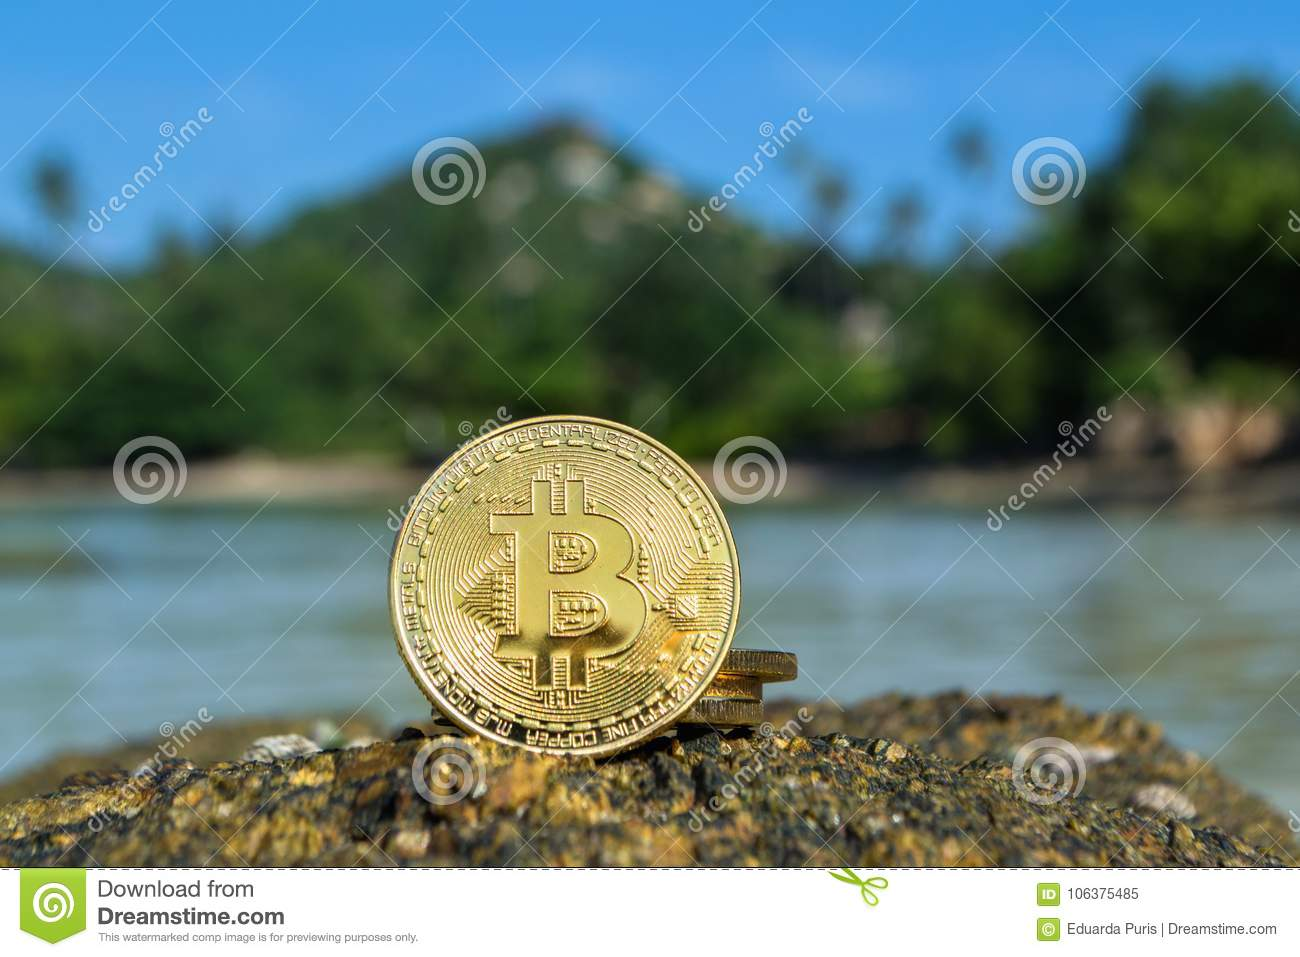 Bitcoins images of nature price is right betting rules in texas